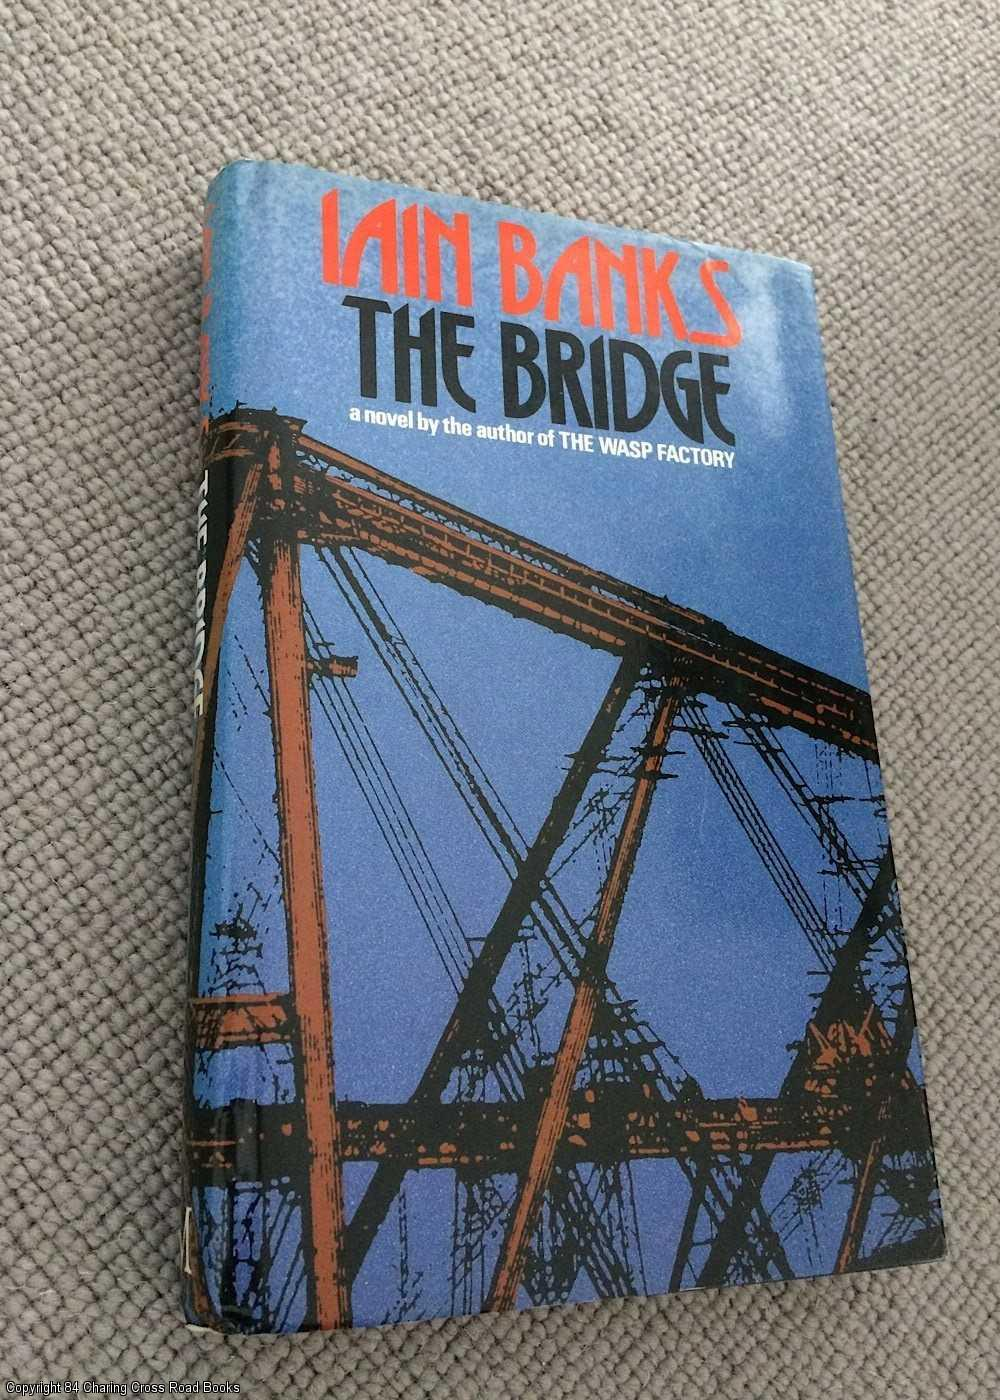 BANKS, IAIN - The Bridge